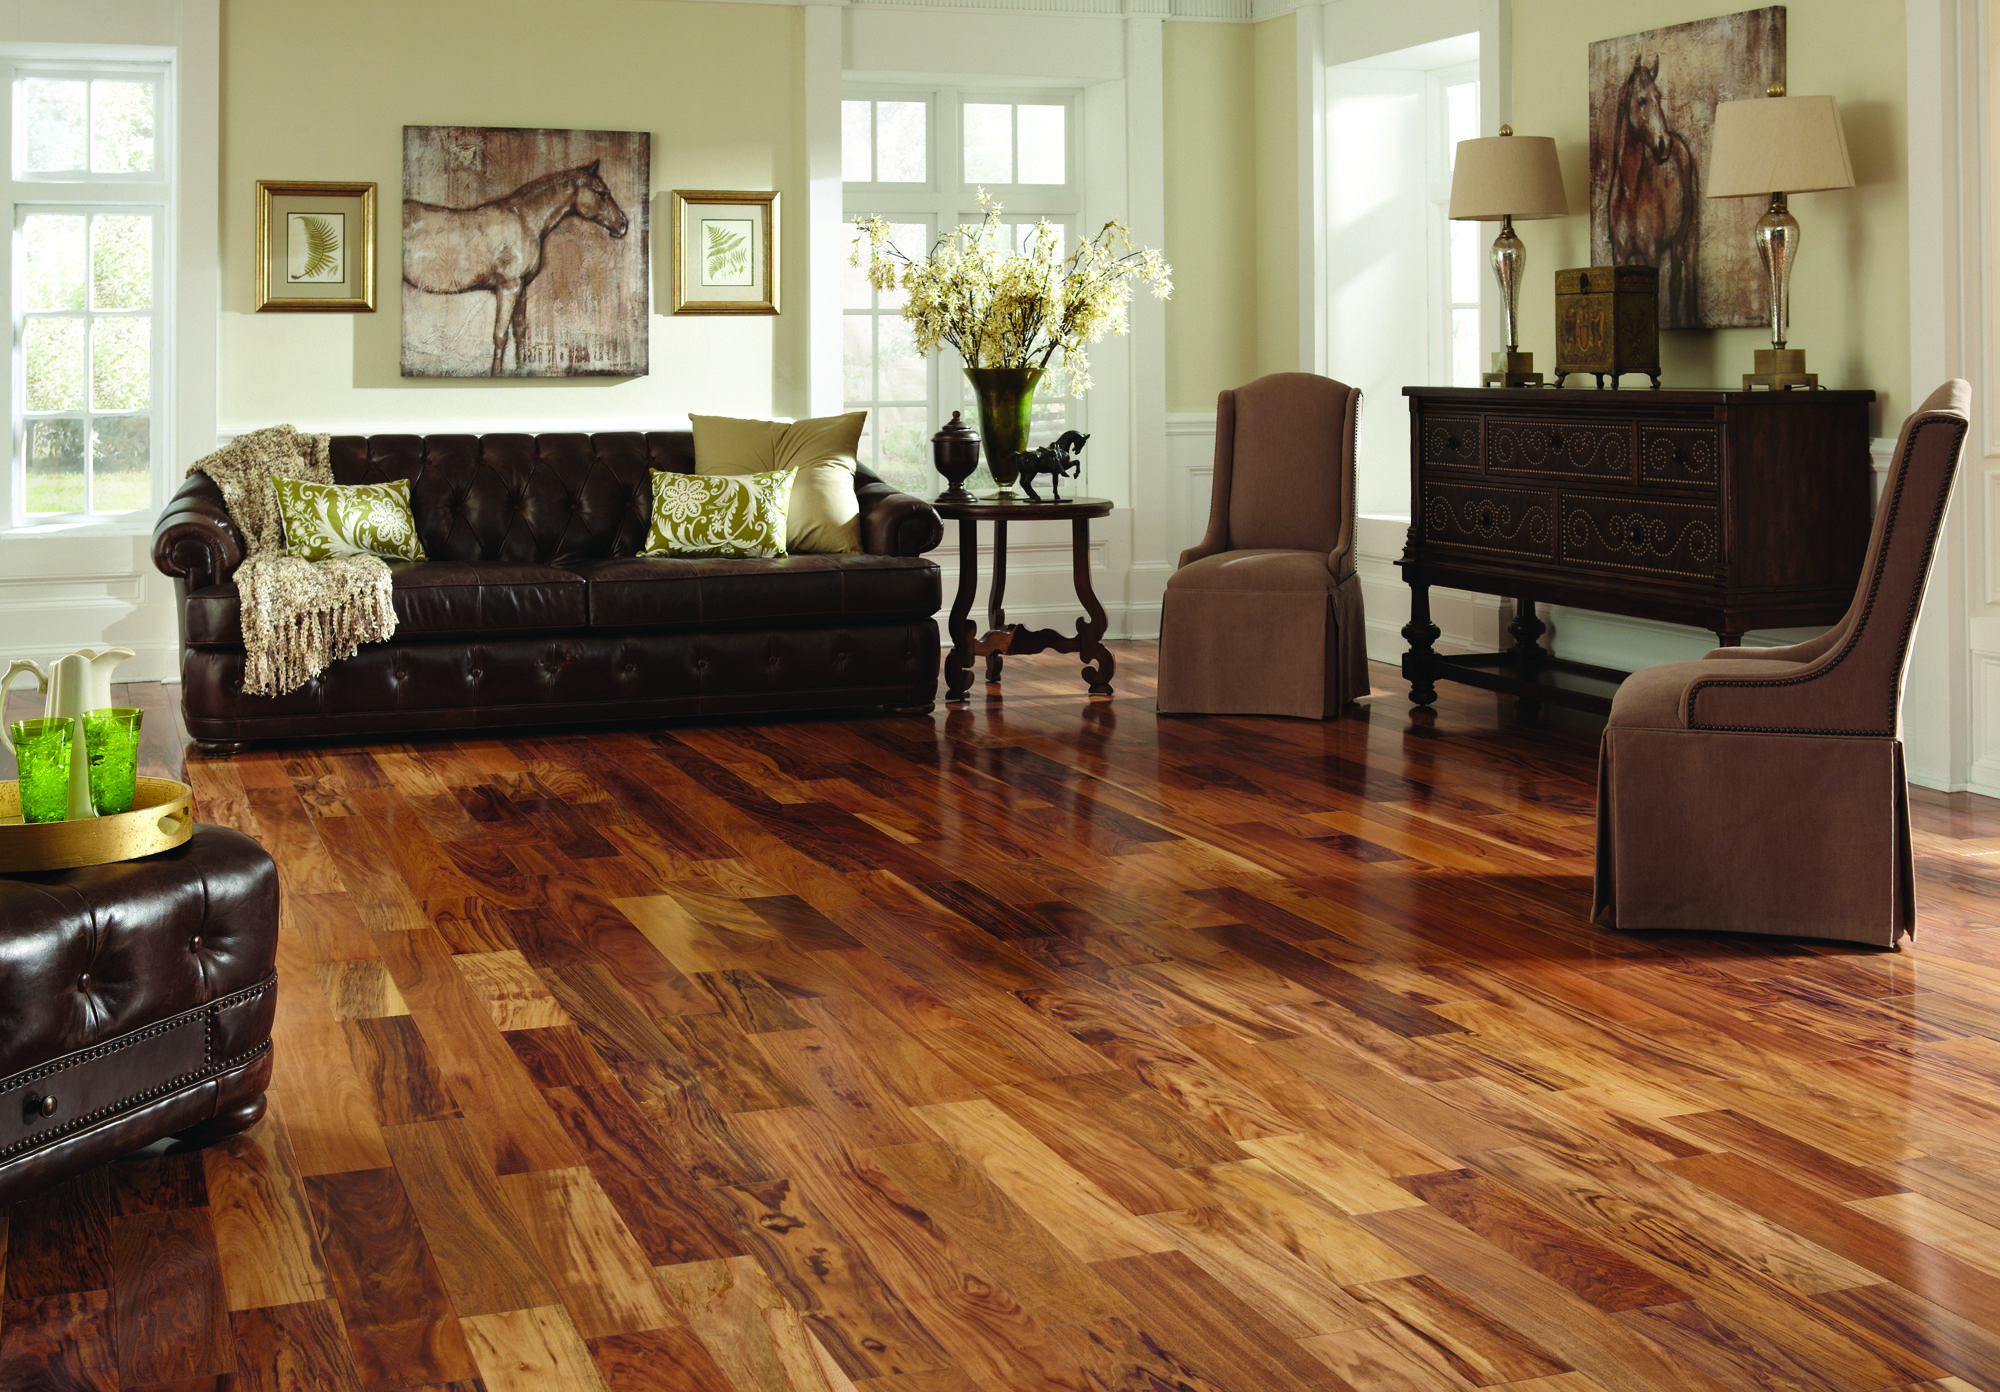 Patagonian Rosewood Is An Extremely Hard And Dense Wood